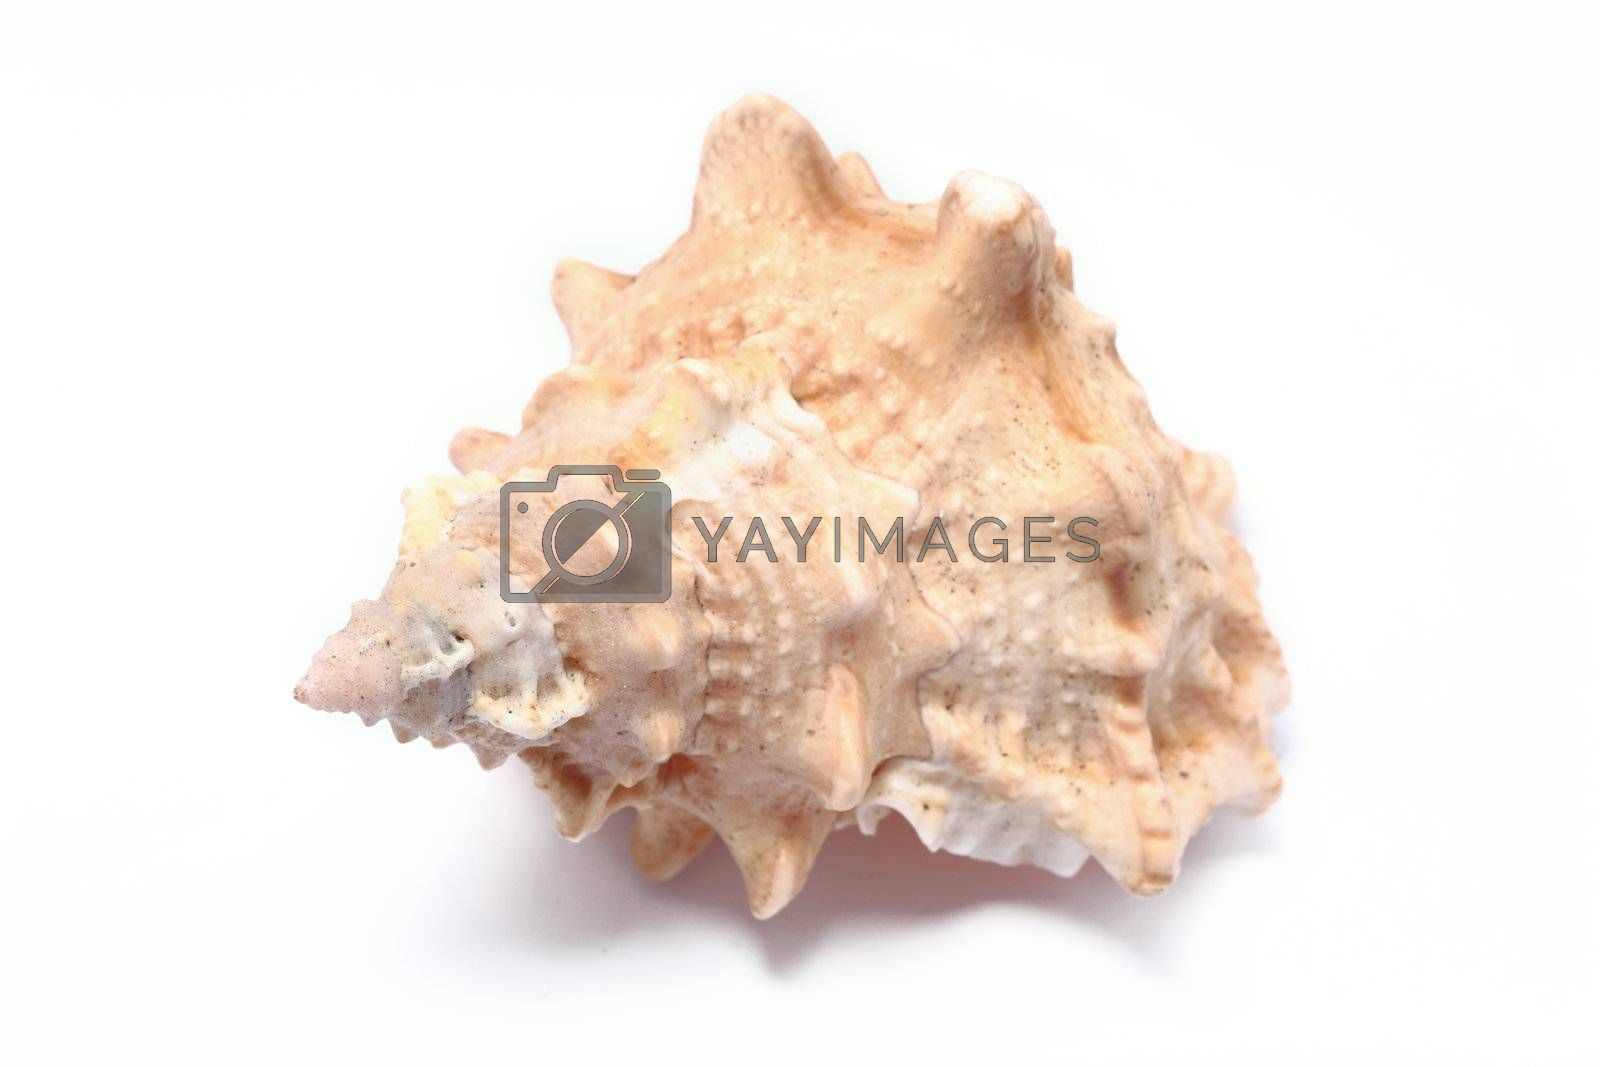 Royalty free image of sea shell on white background by leungchopan